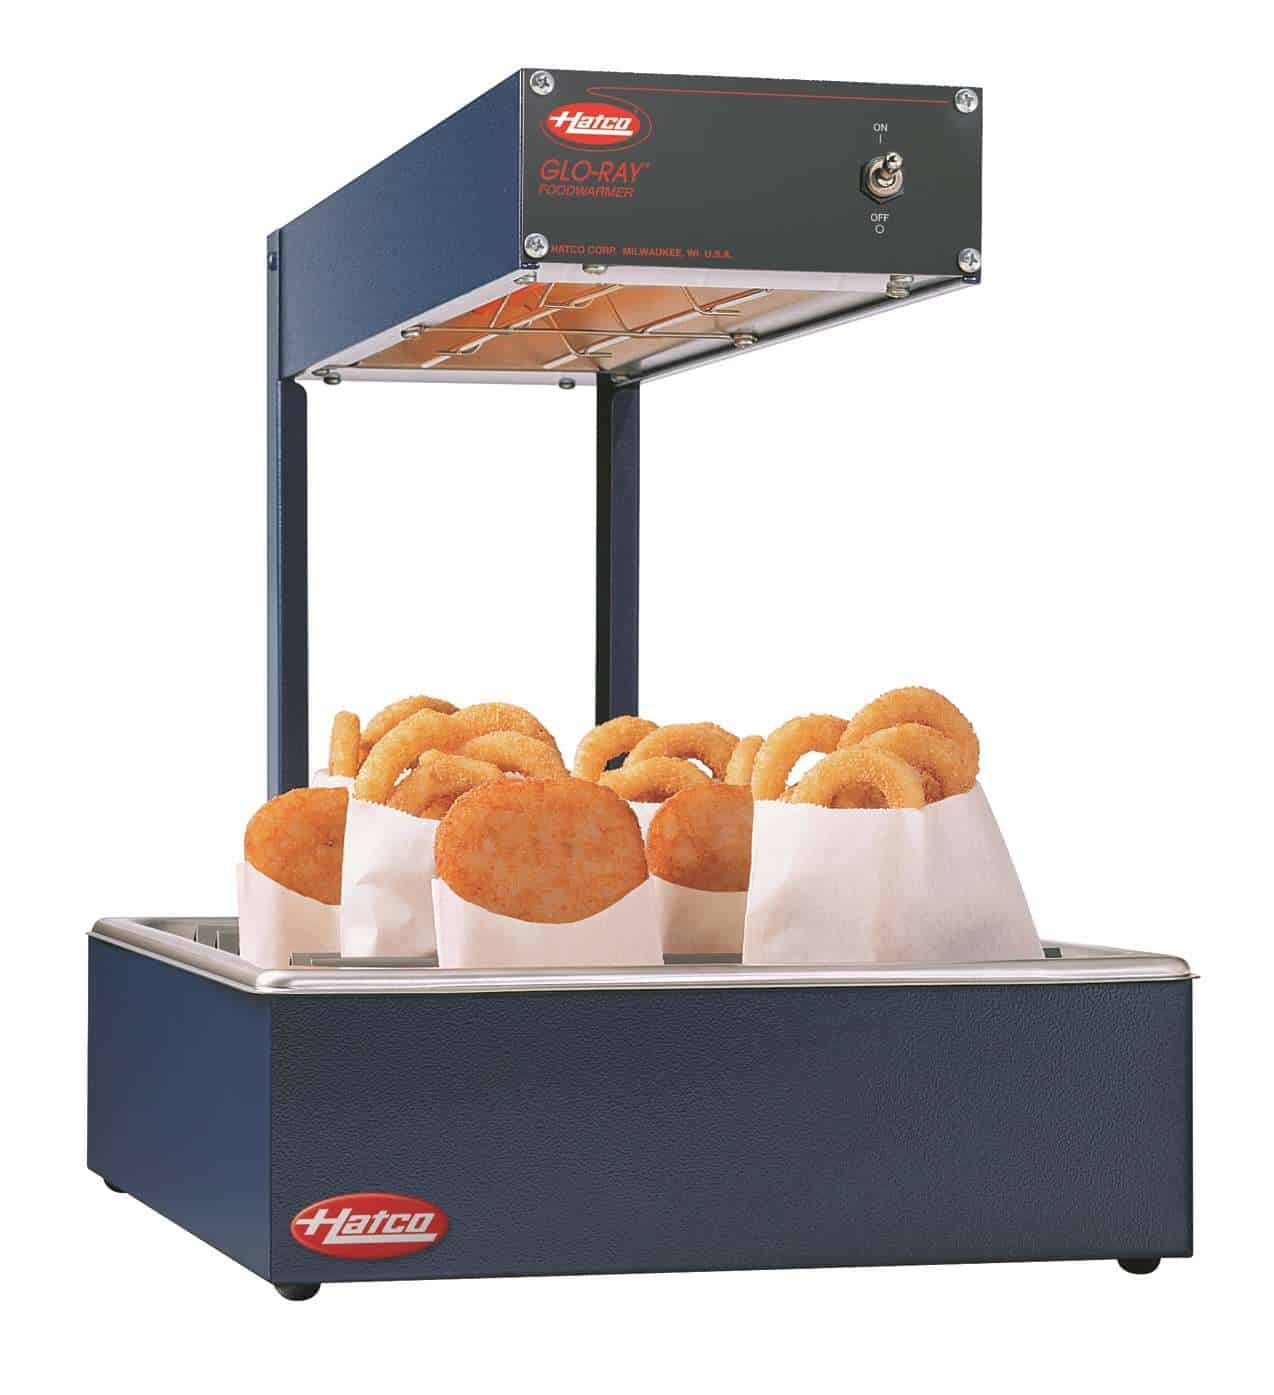 Small Commercial Food Warmer ~ Hatco grff glo ray portable foodwarmer ckitchen